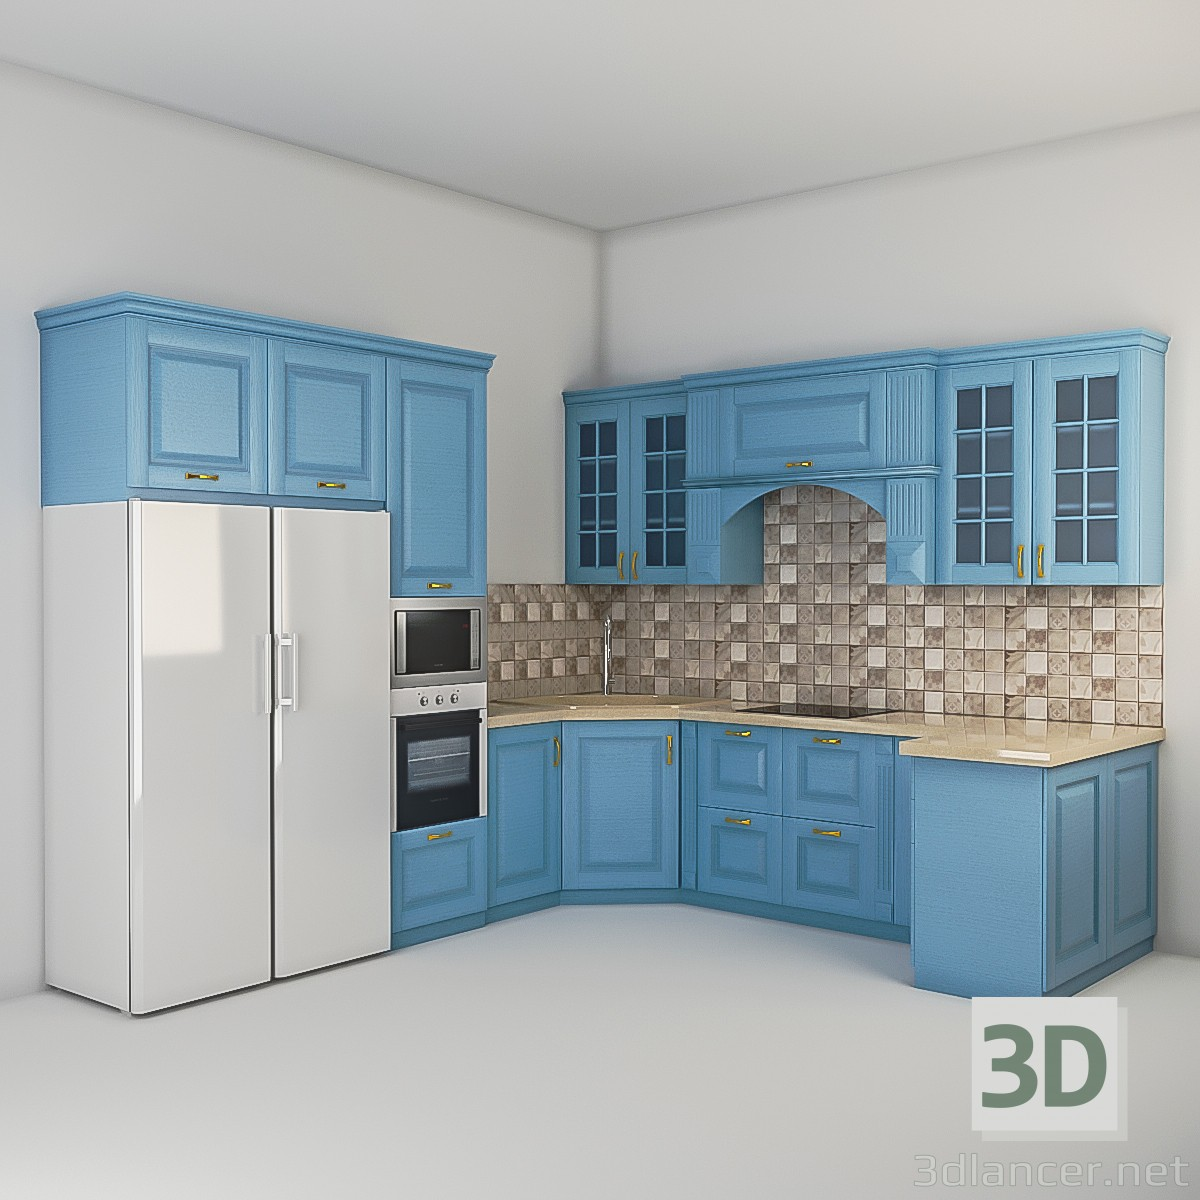 3d max kitchen tutorial